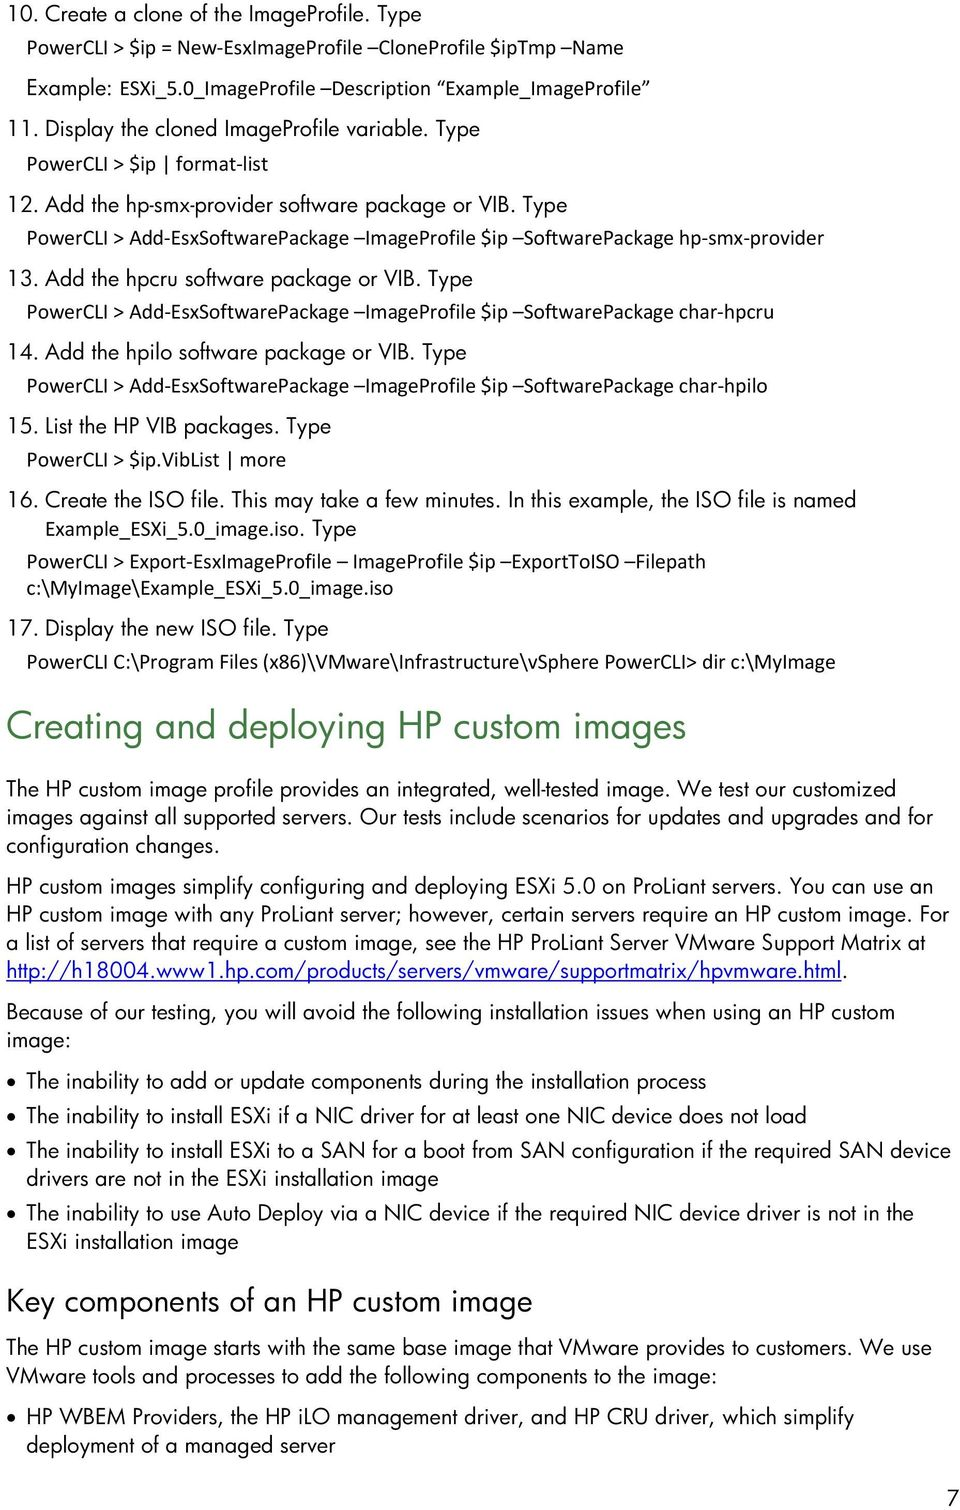 Deploying and updating VMware vsphere 5 0 on HP ProLiant Servers - PDF